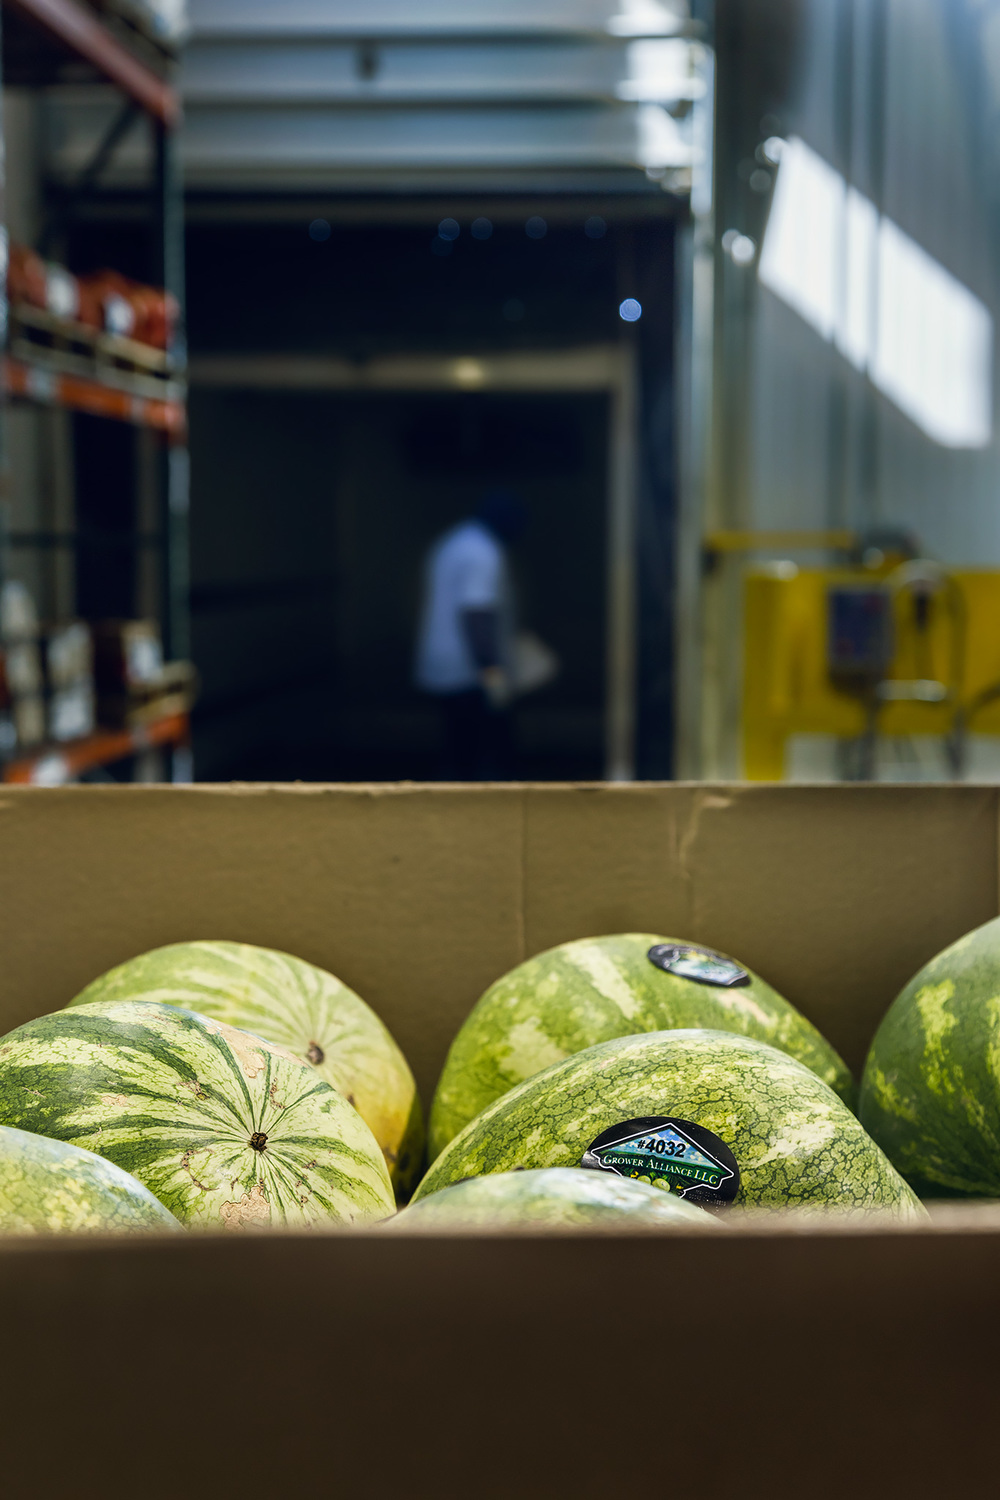 Watermelons in Waiting